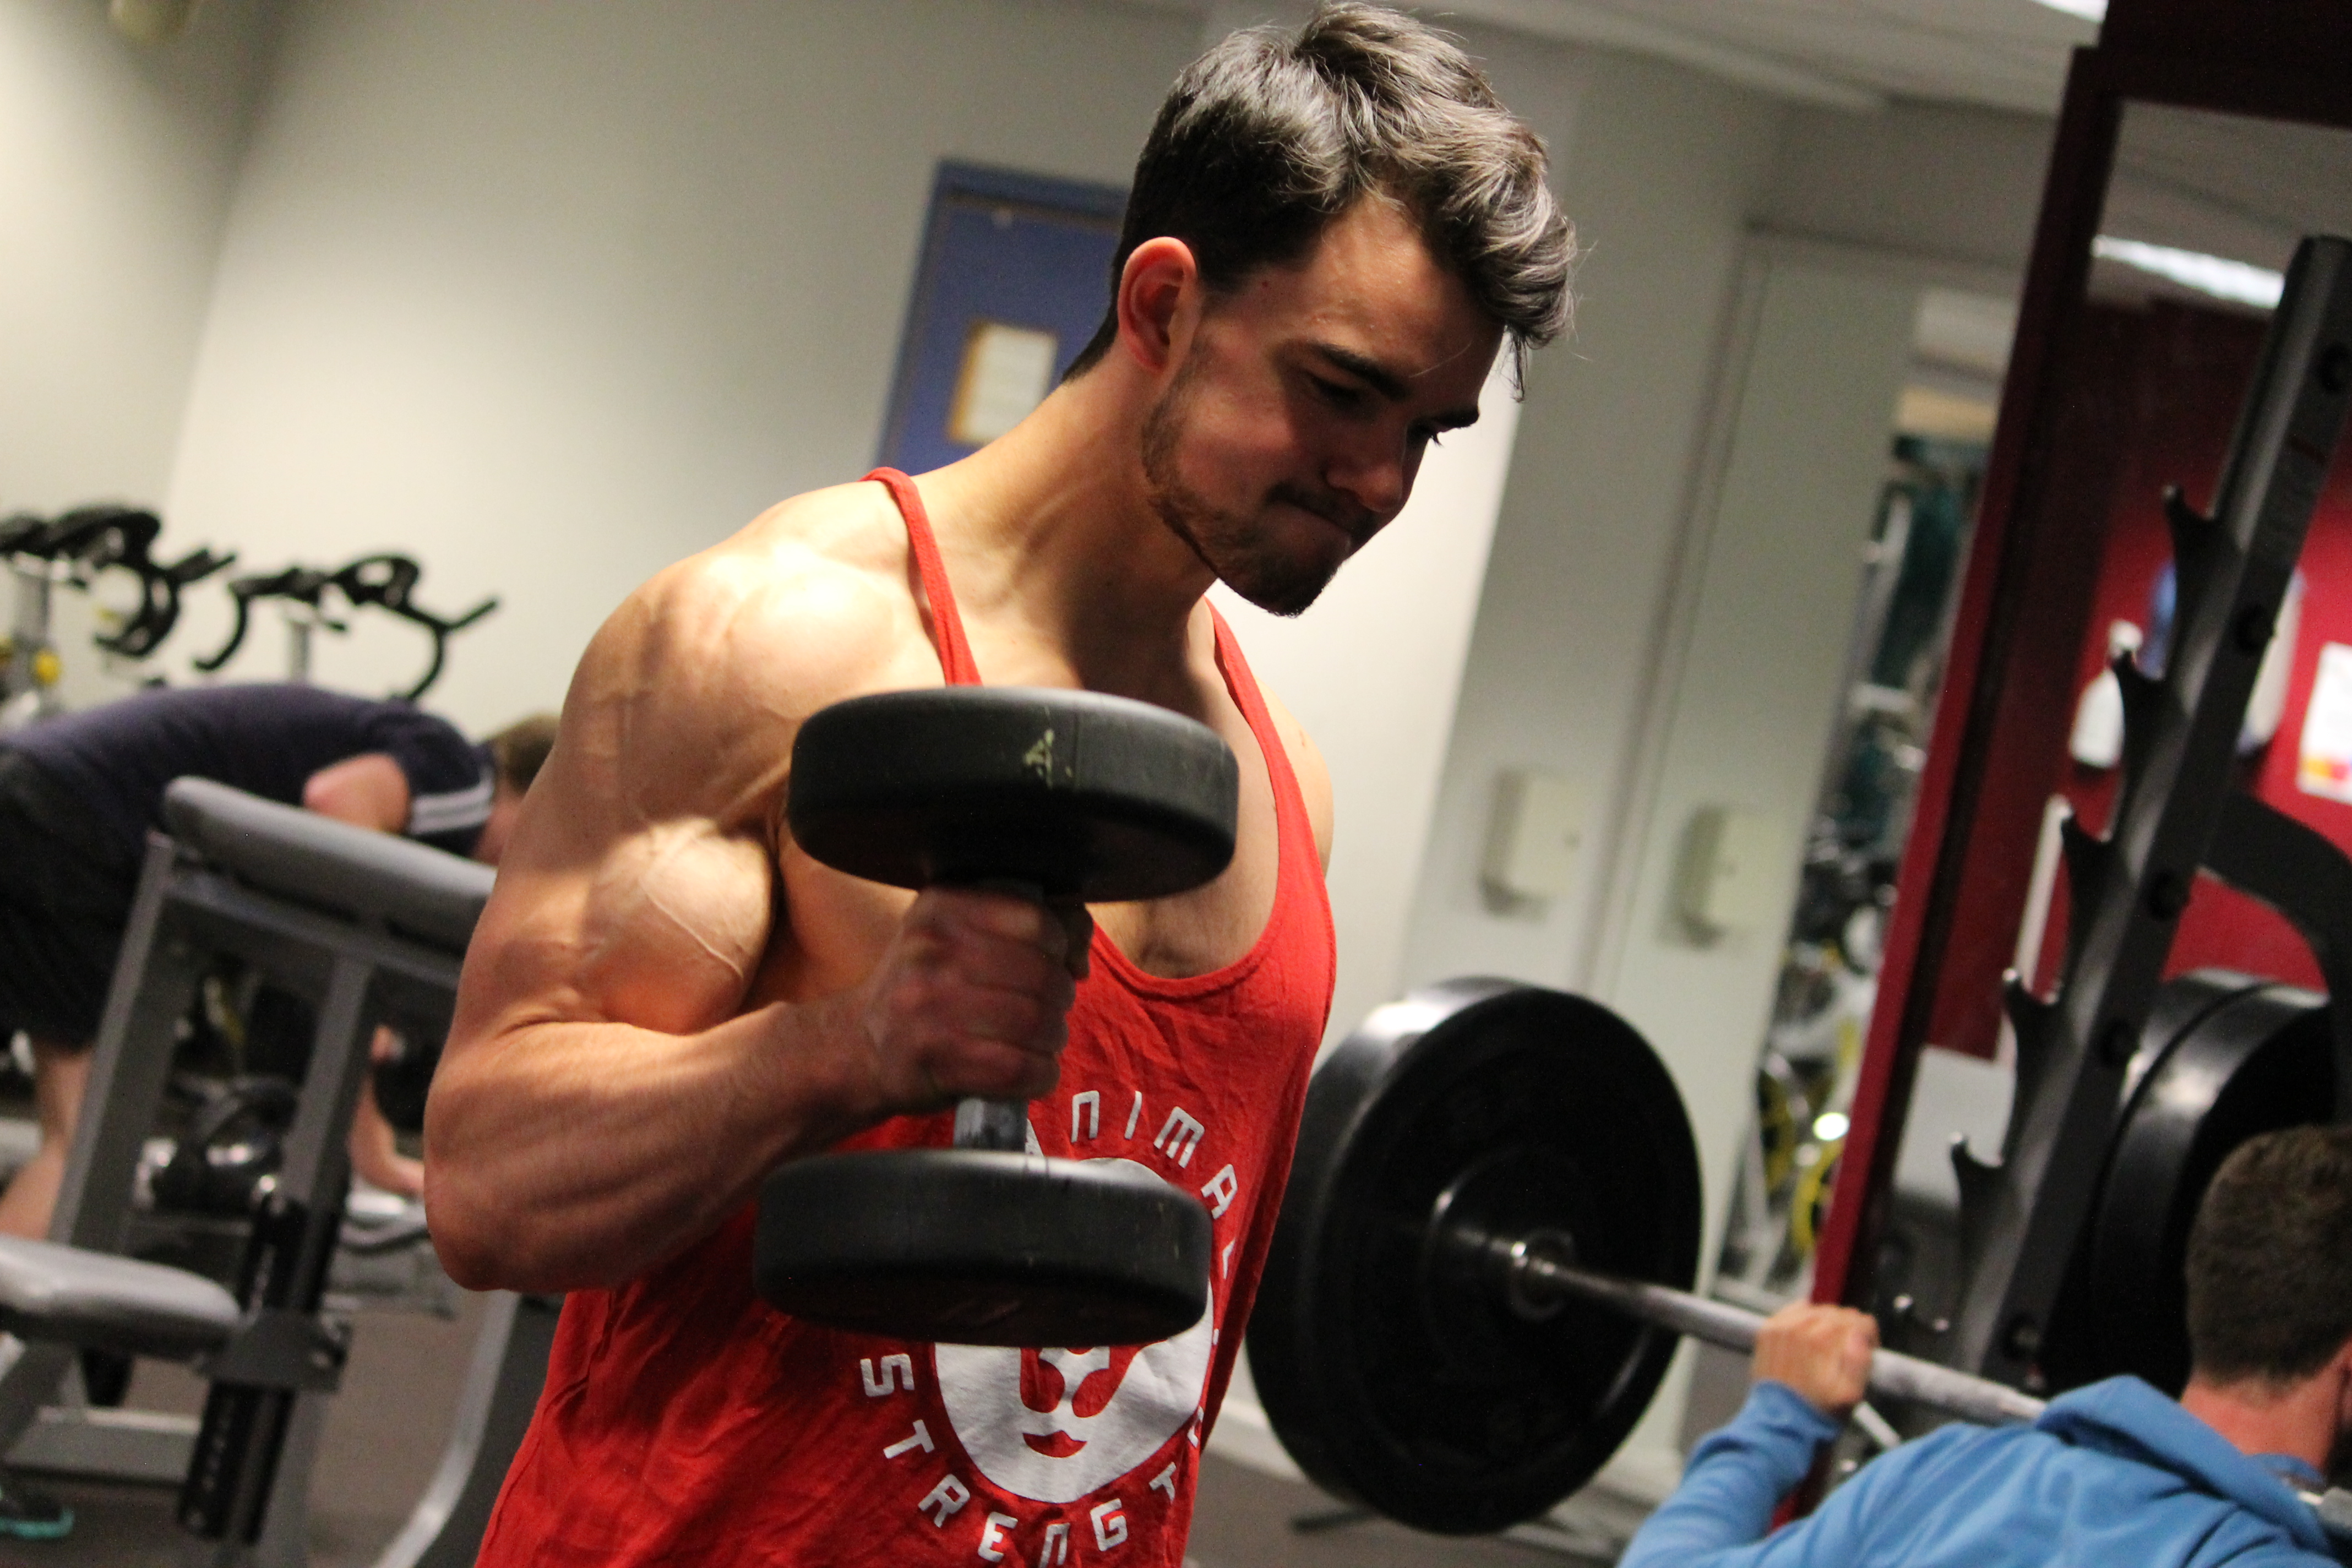 6 Steps to a Building a Winning Bodybuilding Contest Prep – Revive